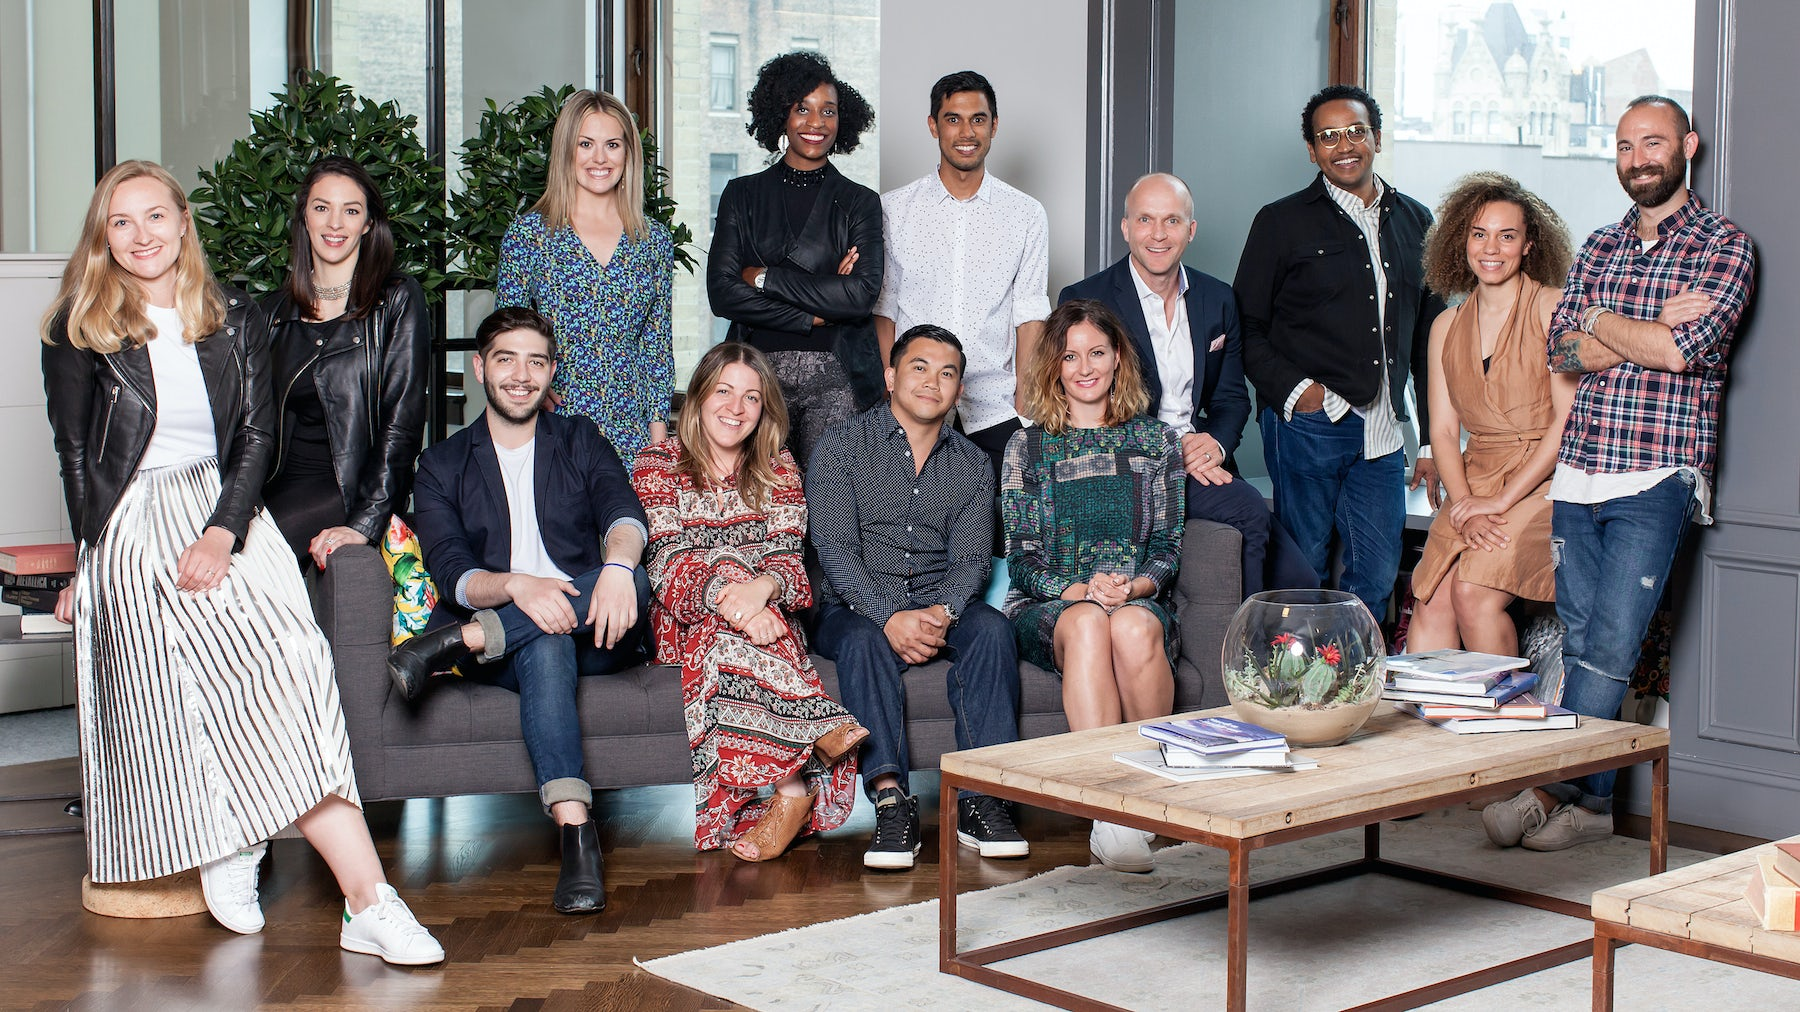 The H&M team, including Daniel Kulle, President of H&M N. America, seated on right chair arm | Source: H&M